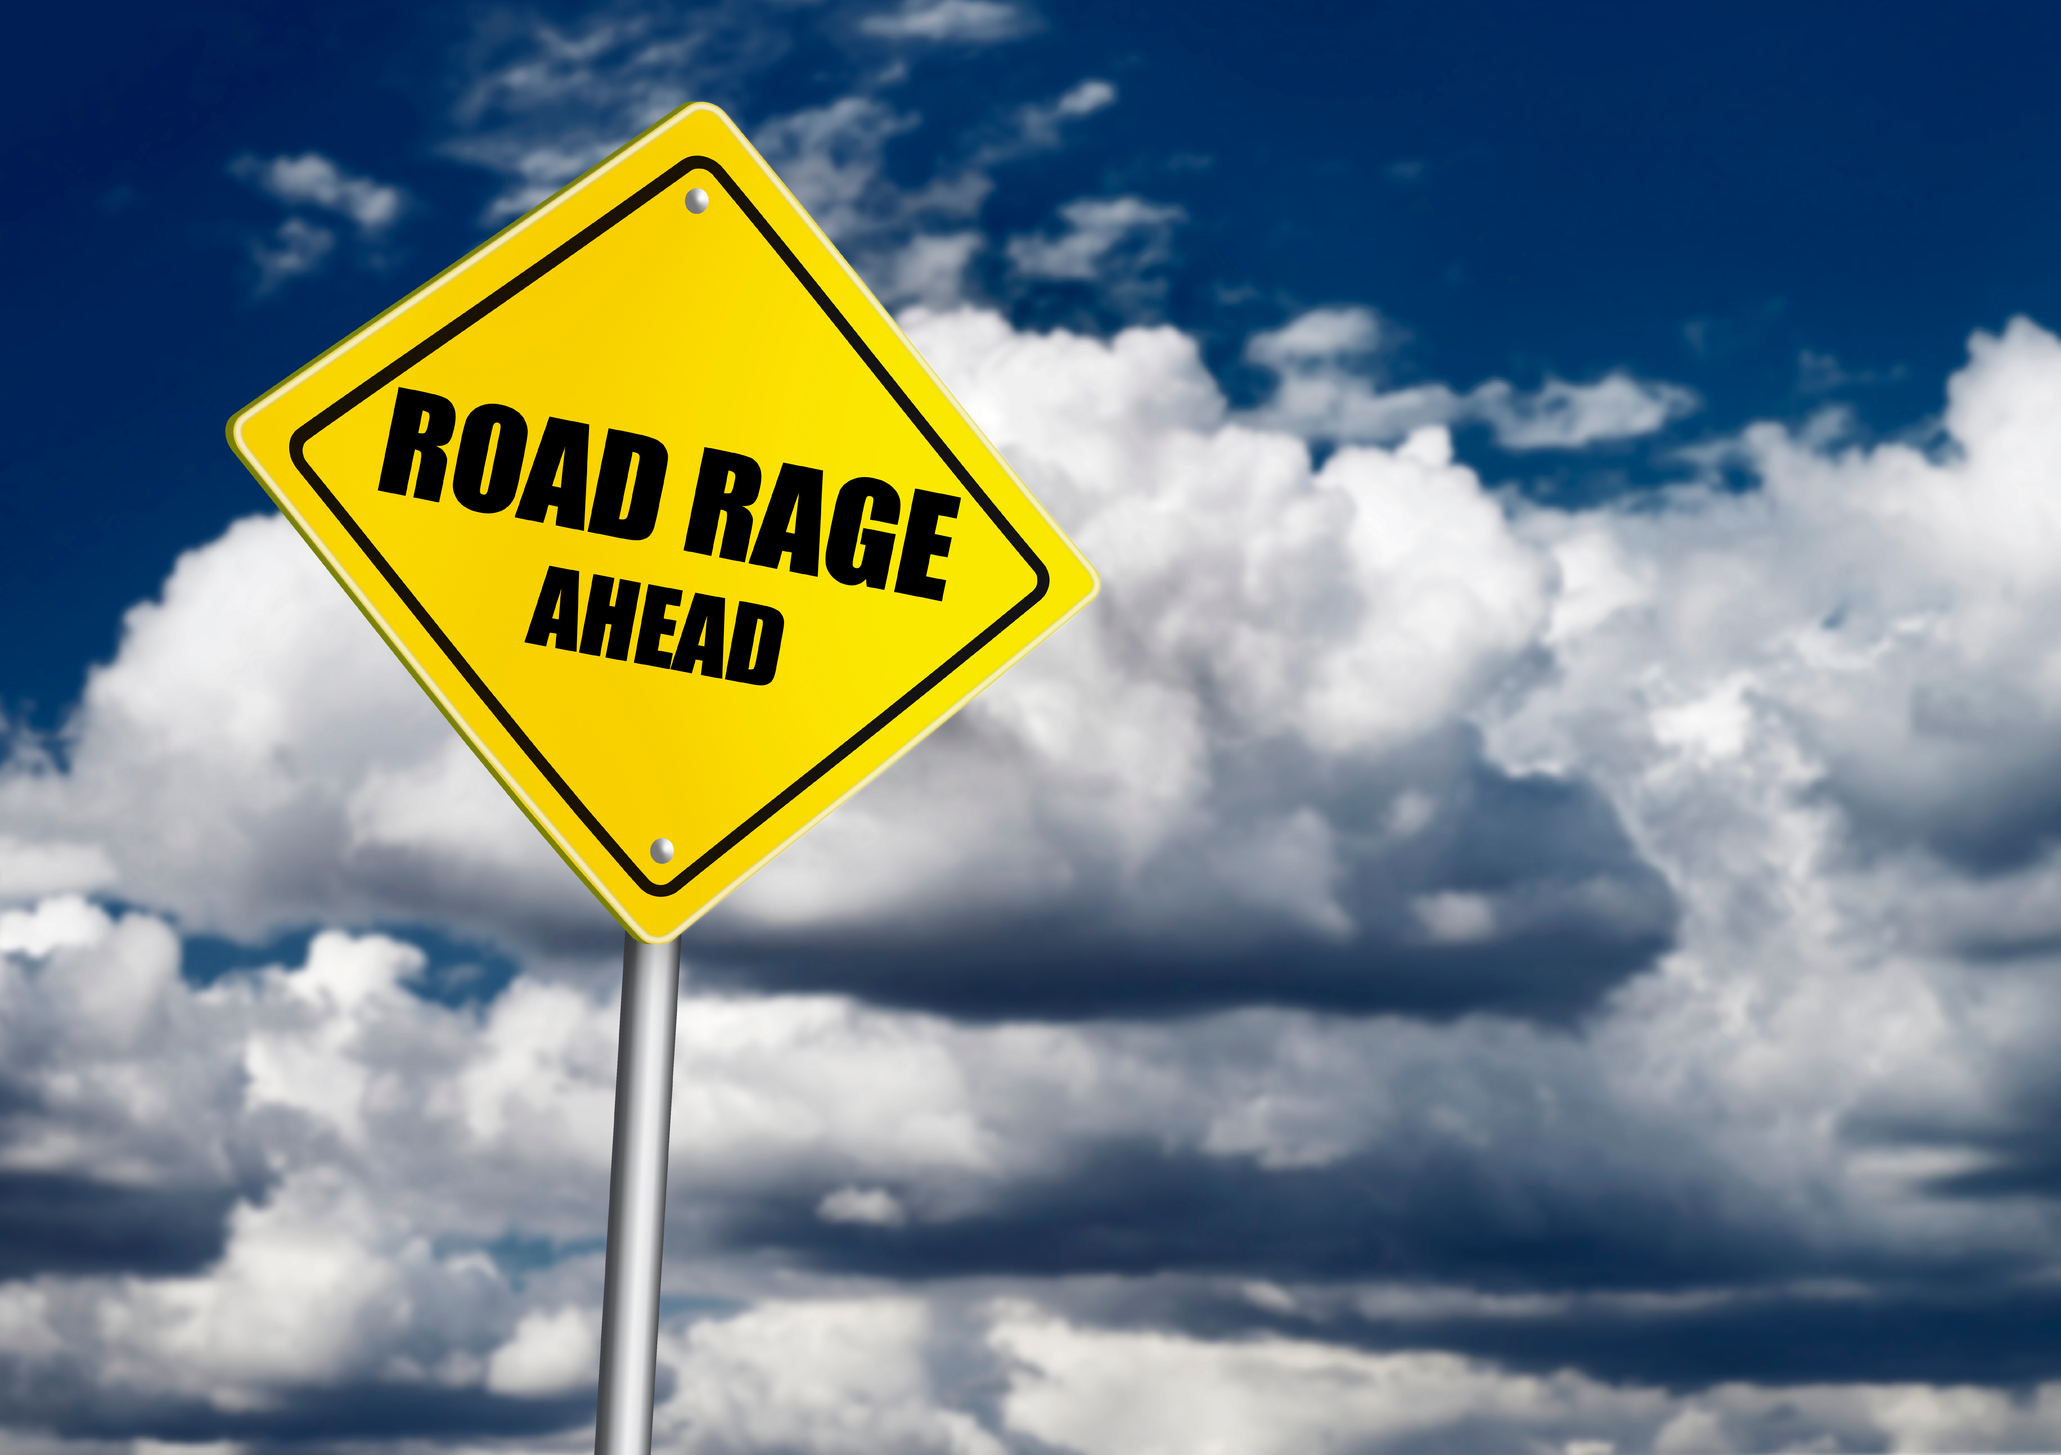 Road rage is a real danger